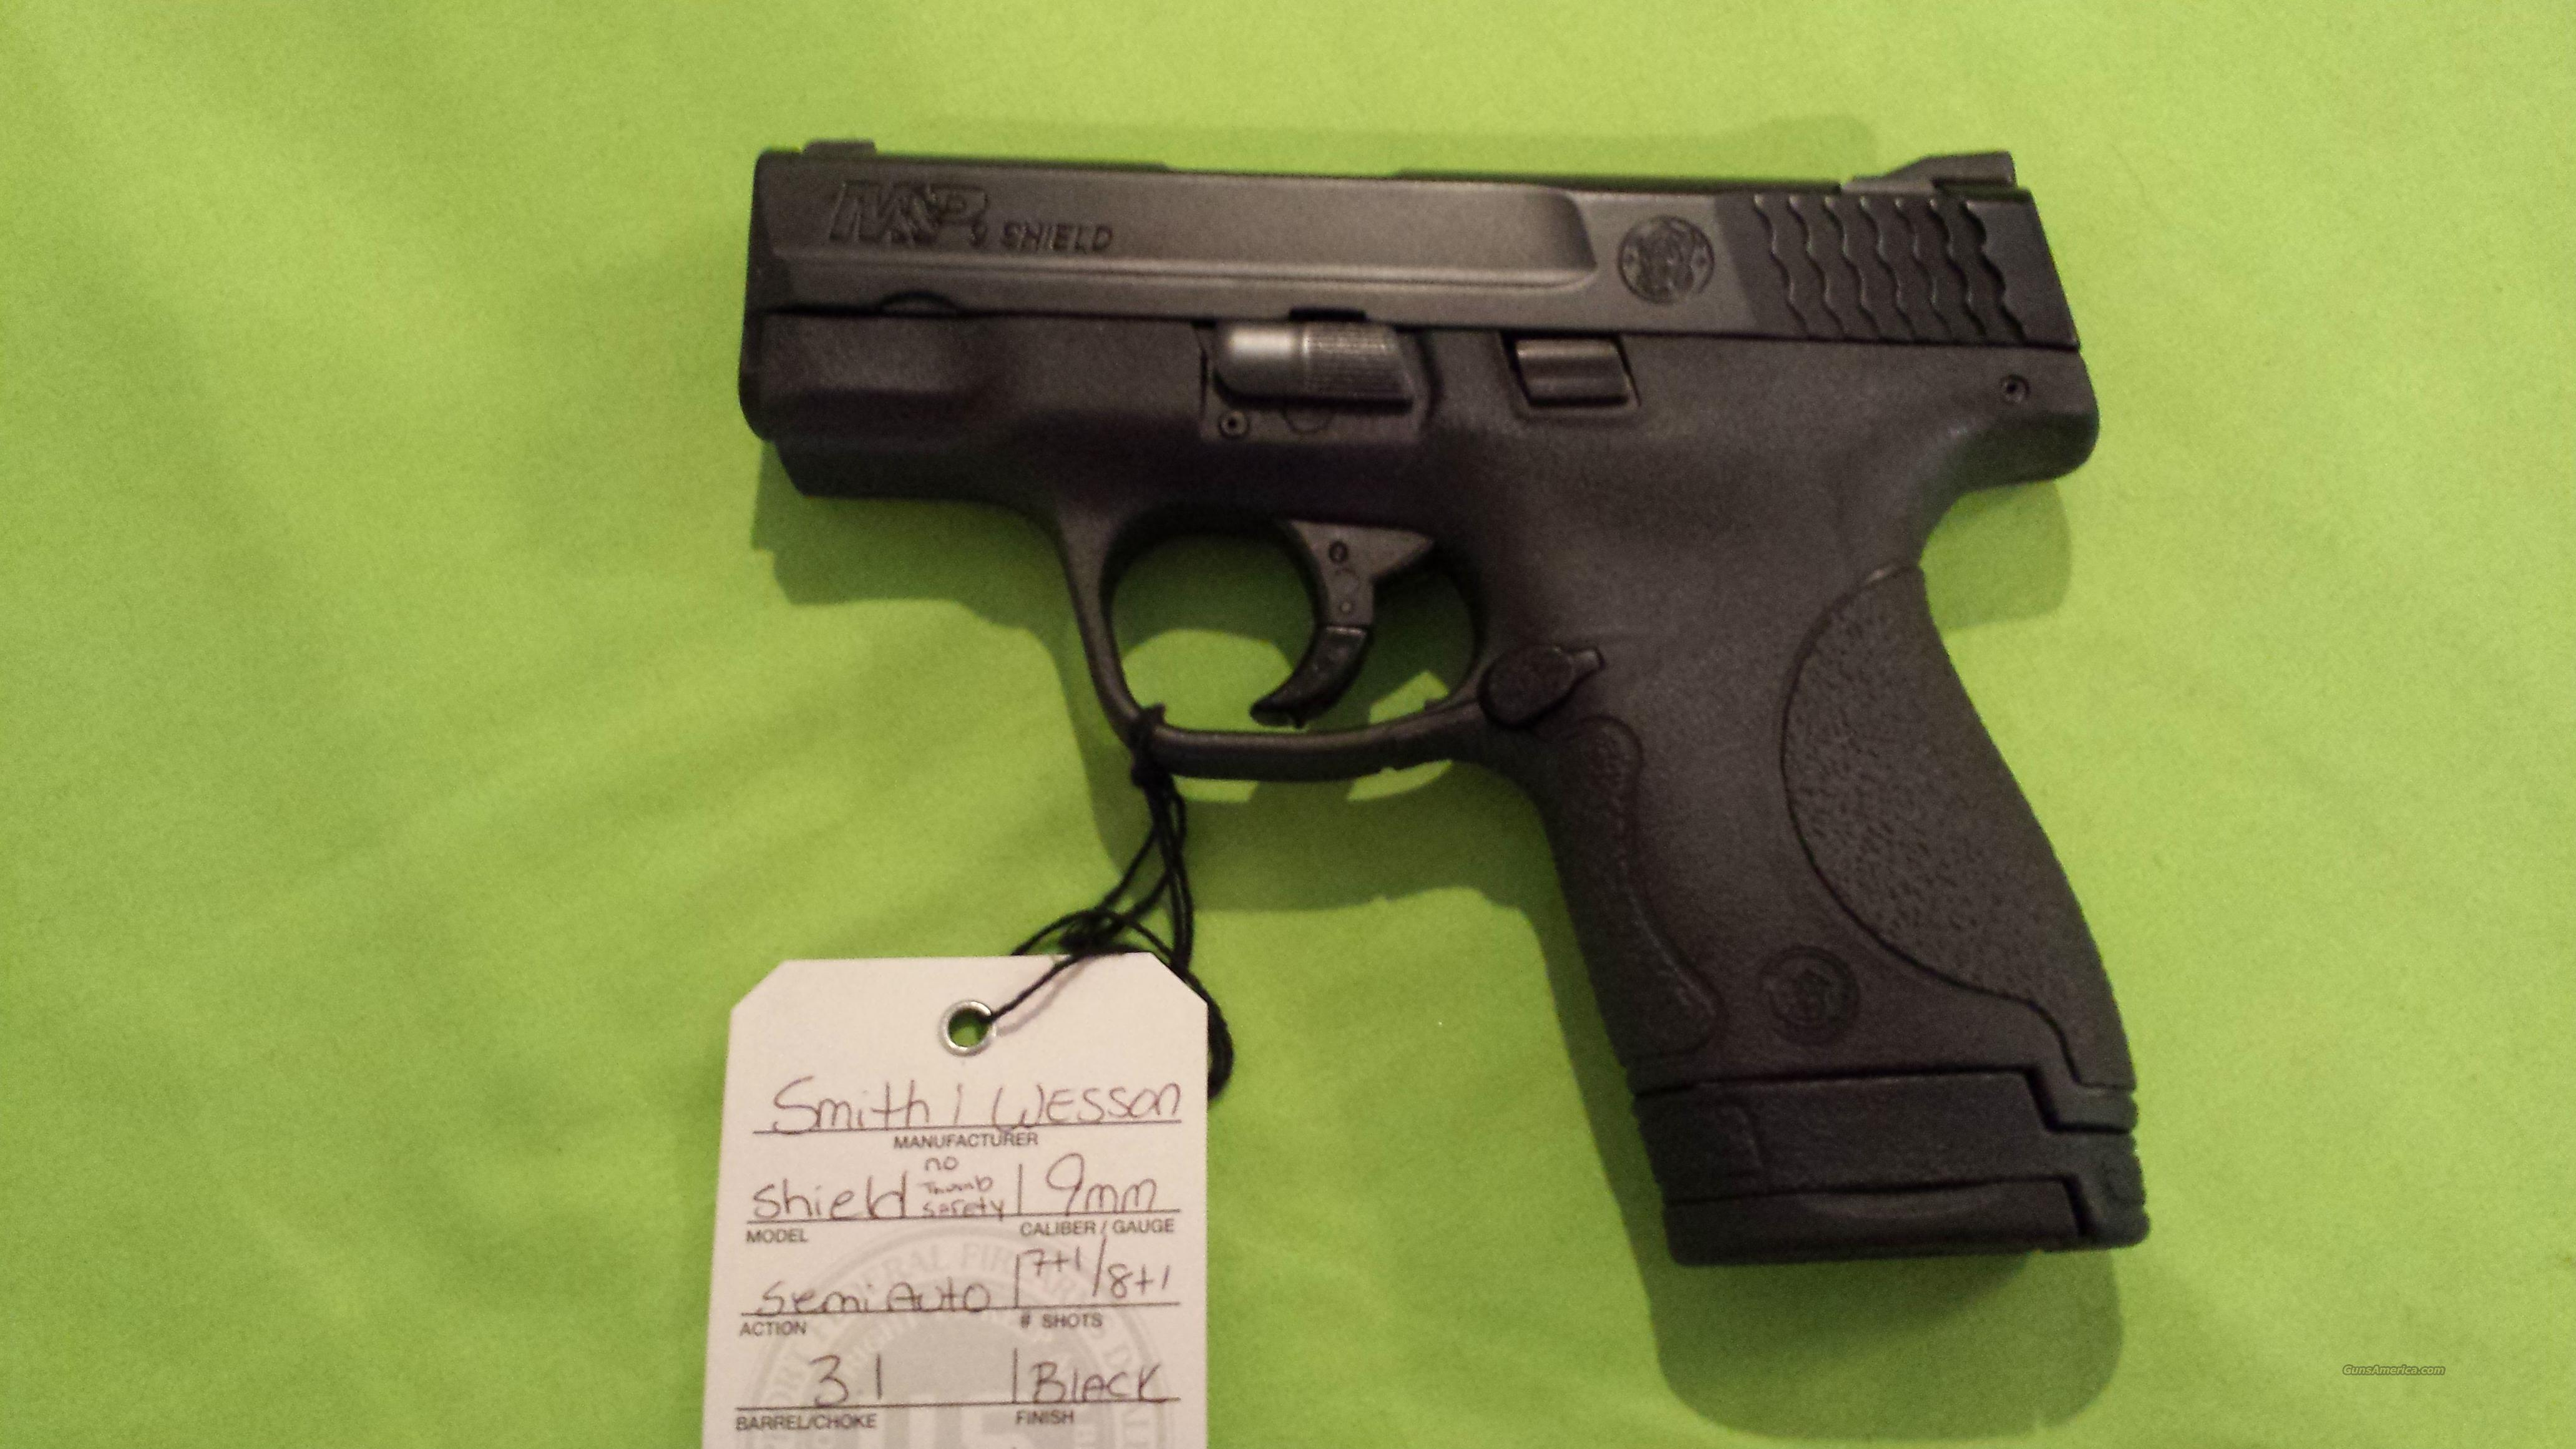 SMITH & WESSON M&P 9 SHIELD 9MM 7/8RD NO SAFETY  Guns > Pistols > Smith & Wesson Pistols - Autos > Shield